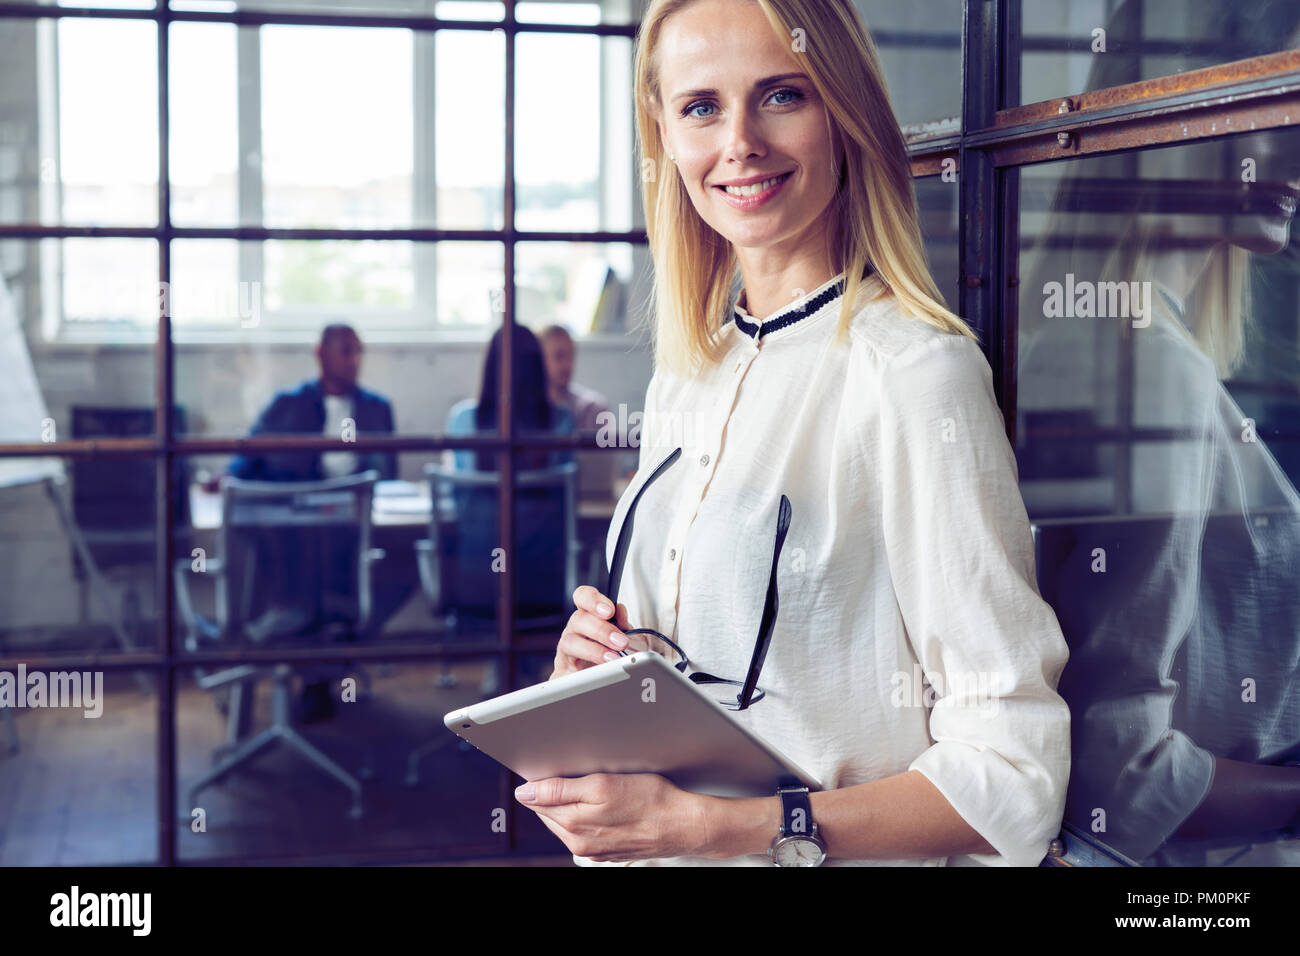 Leading her team to success. Confident young woman holding digital tablet and looking at camera with smile while her colleagues working in the background. - Stock Image